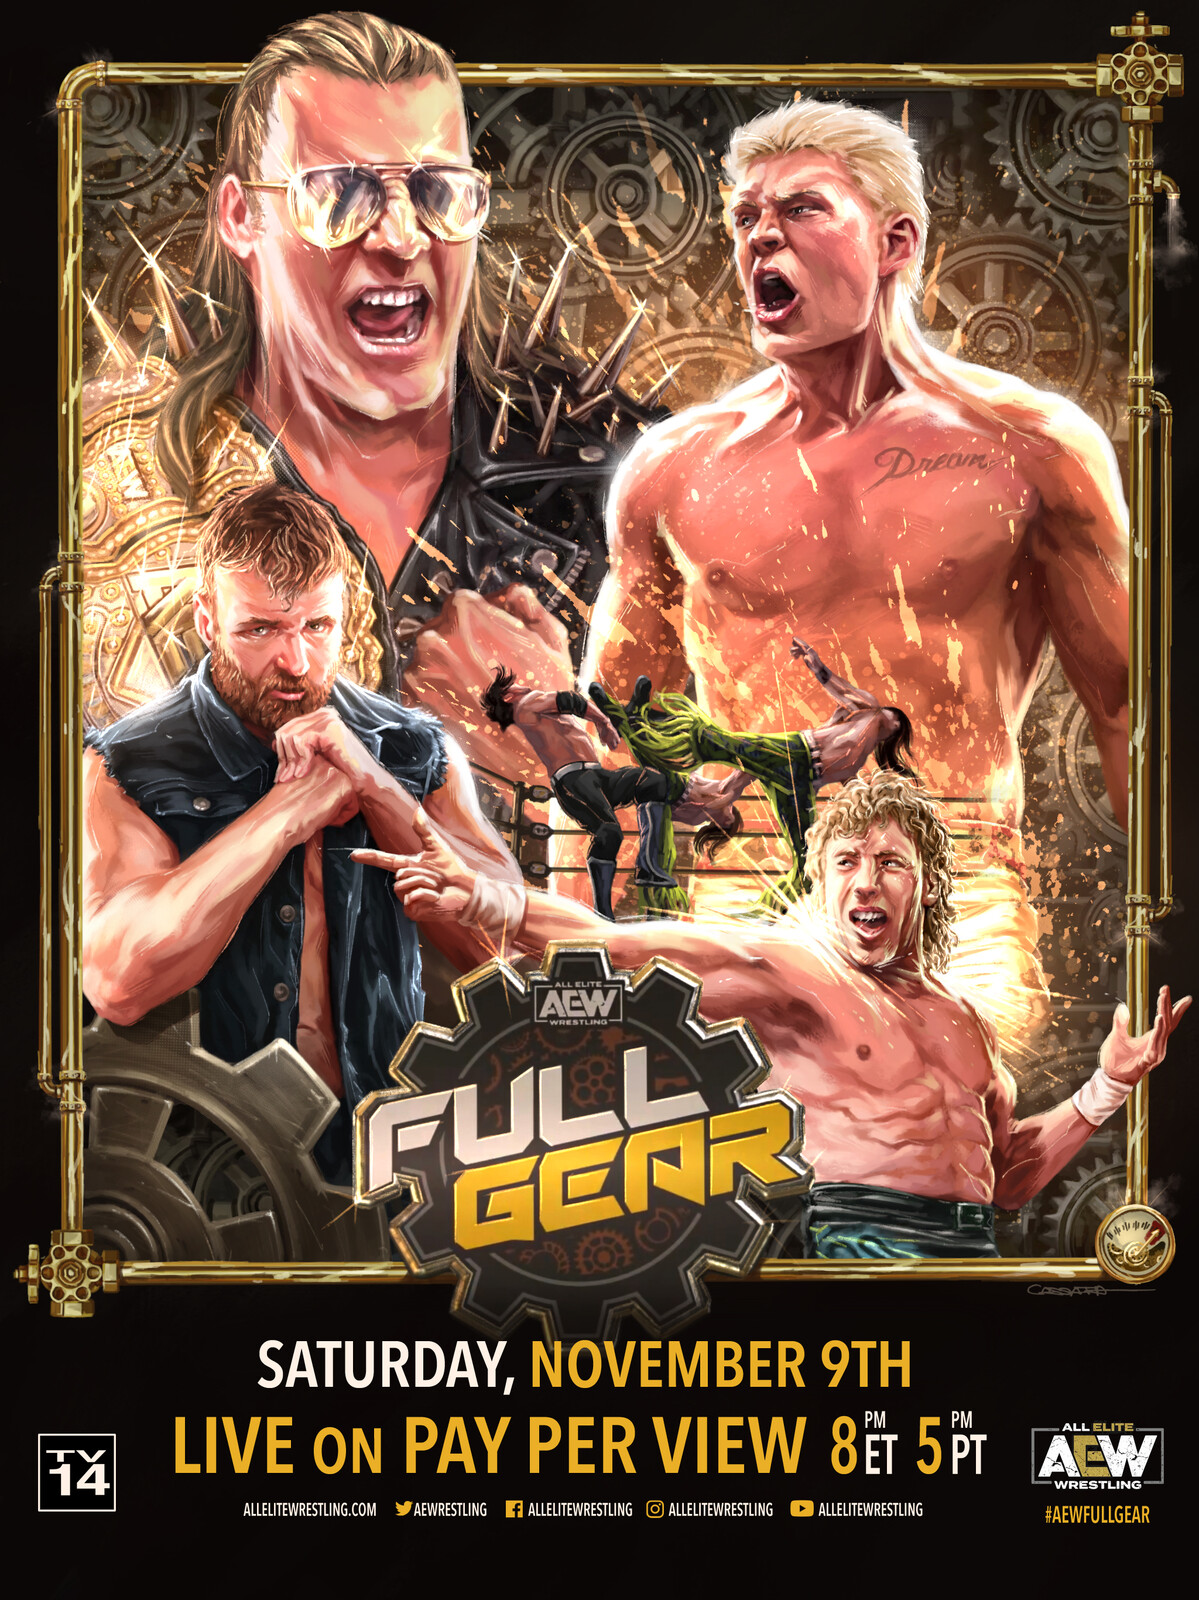 AEW Full Gear PPV poster